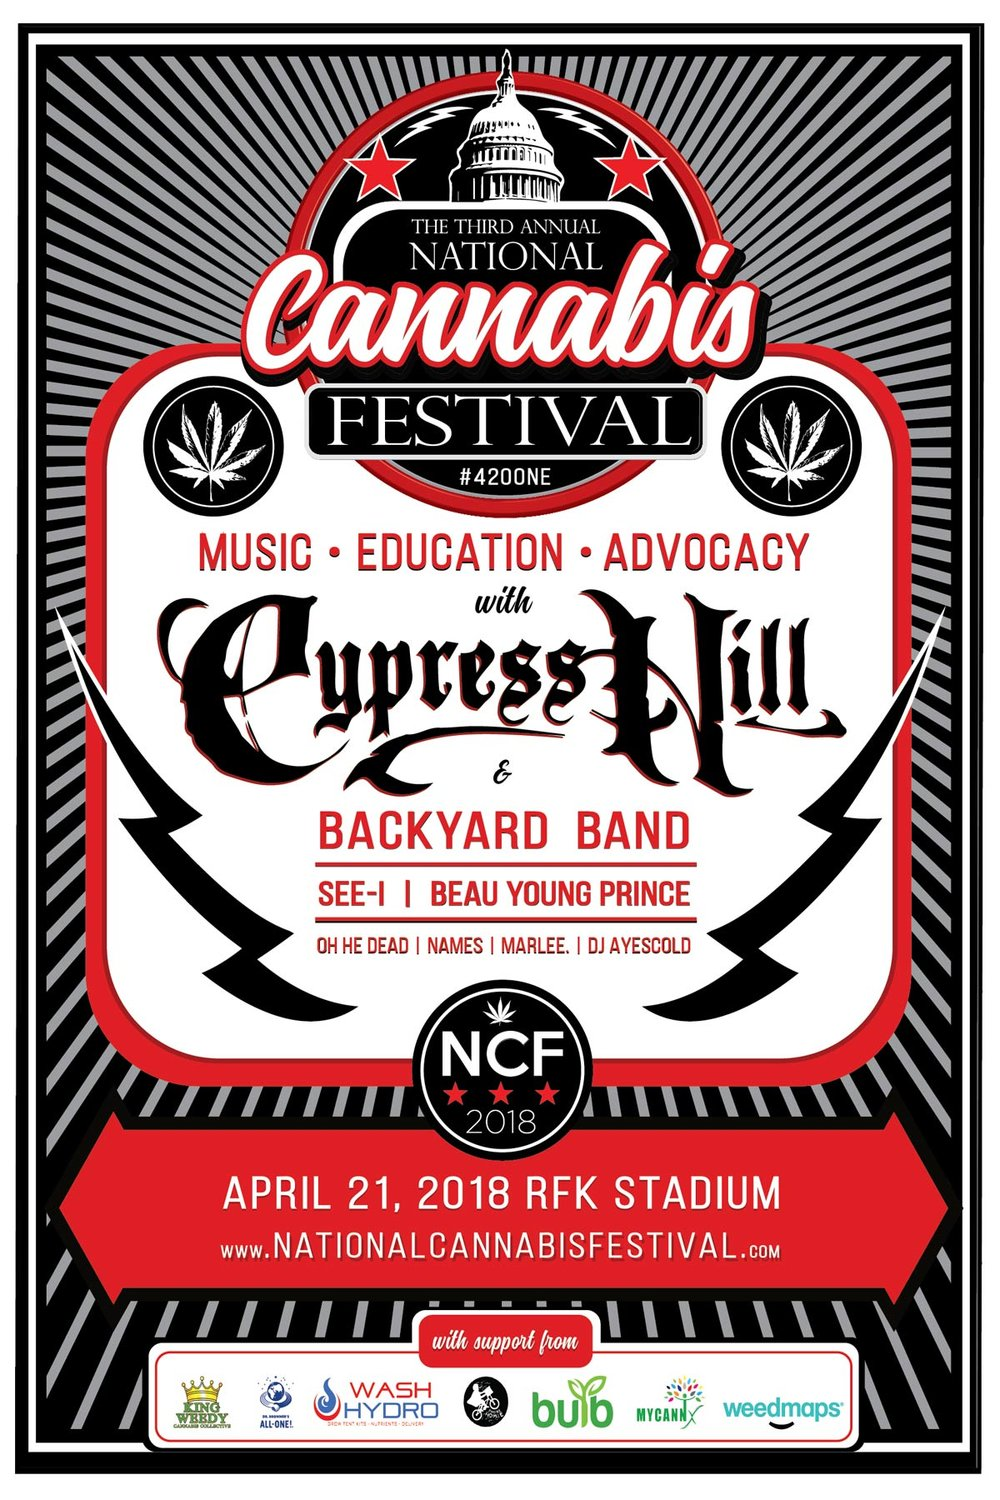 National-Cannabis-Festival-FLYER-FRONT.jpg